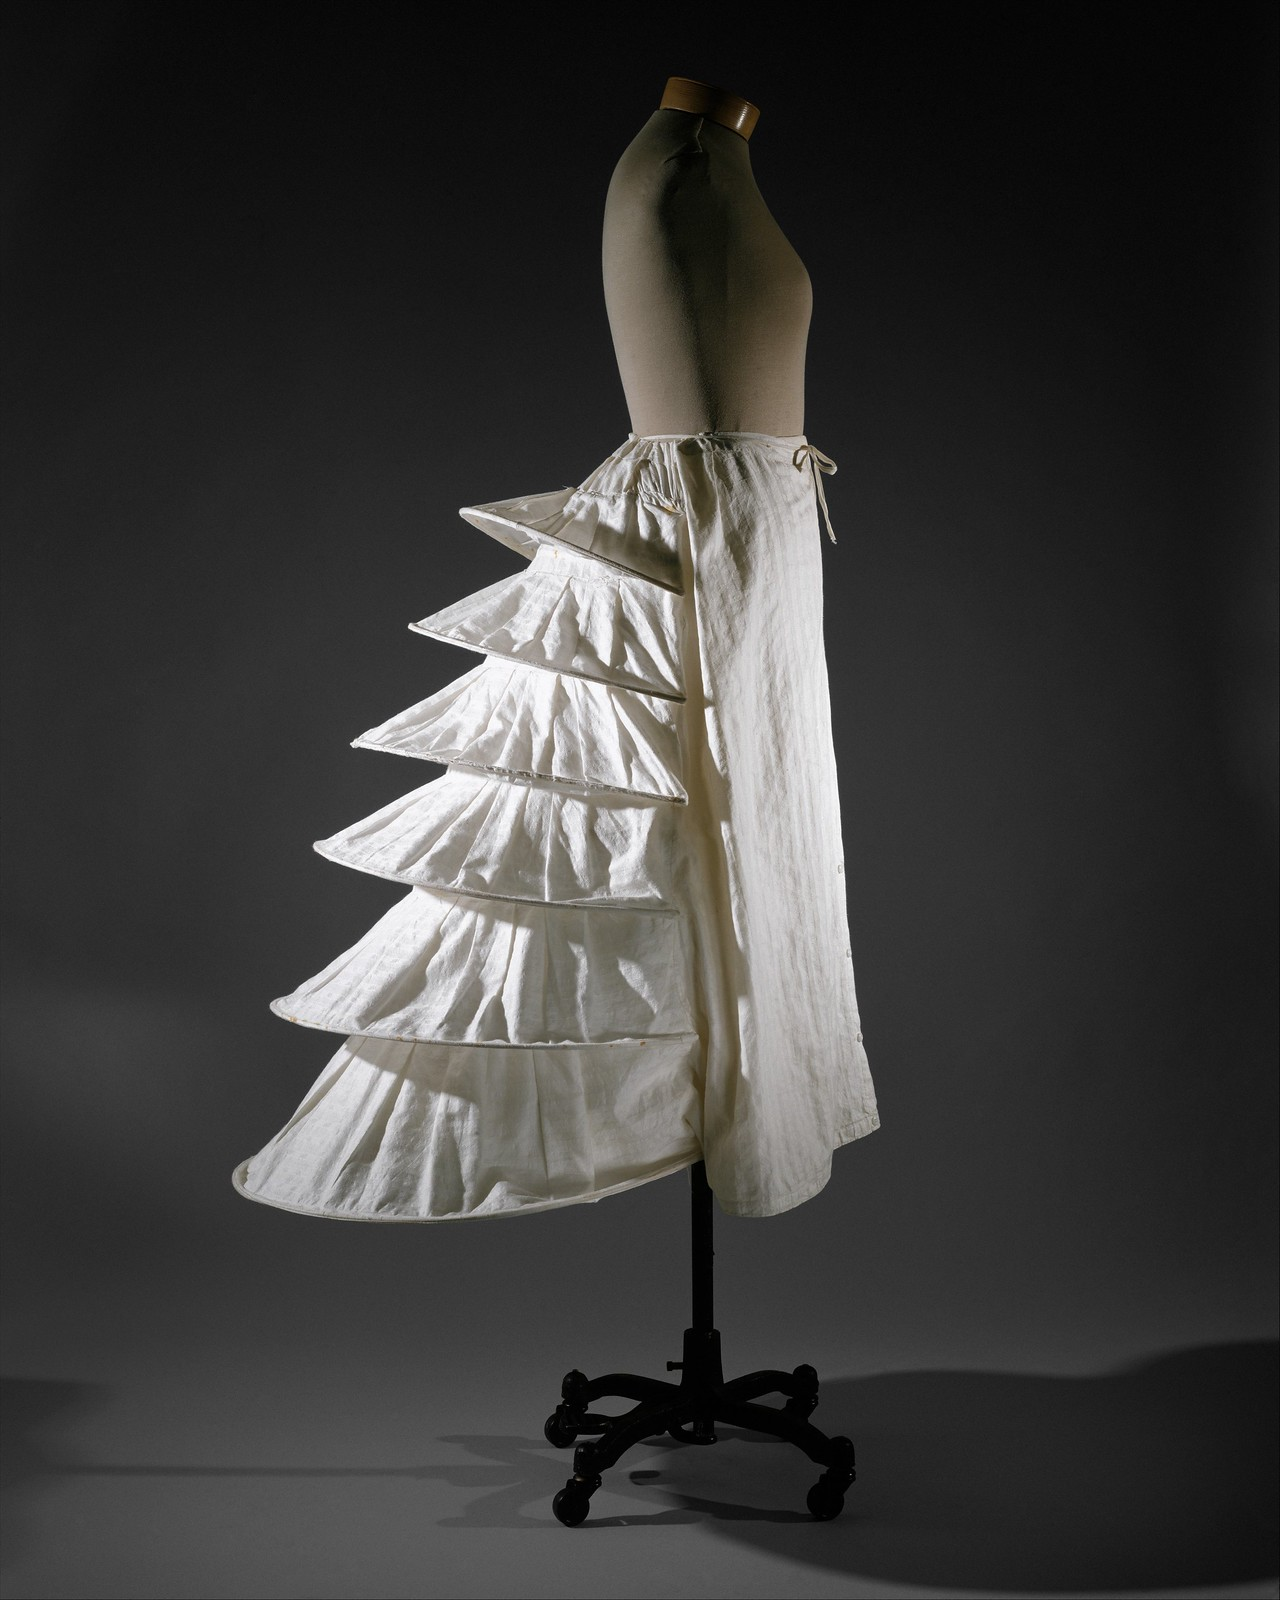 Bustle from 1871, British, cotton, metal. metmuseum